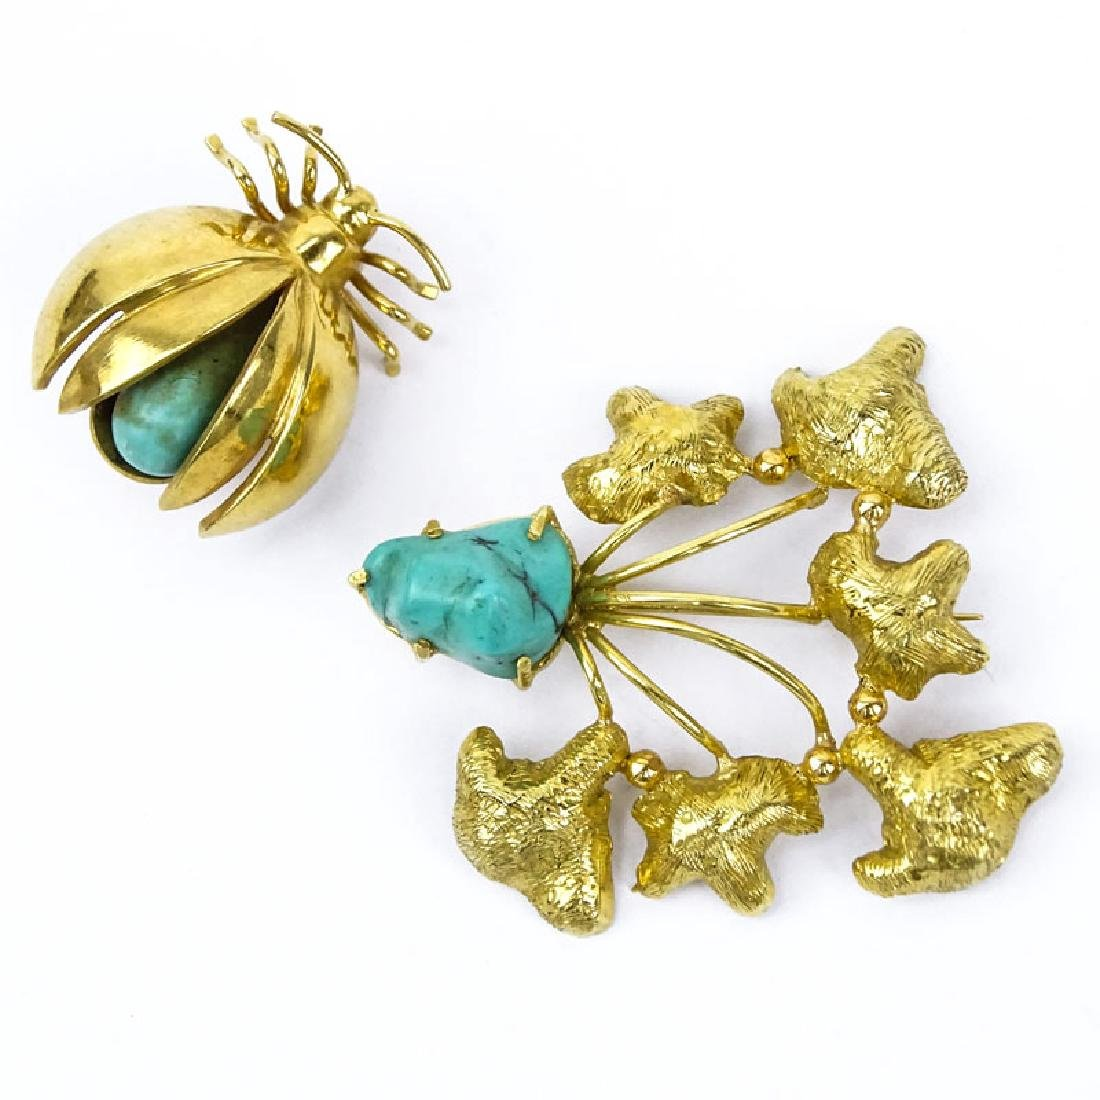 Two Vintage 18 Karat Yellow Gold and Turquoise